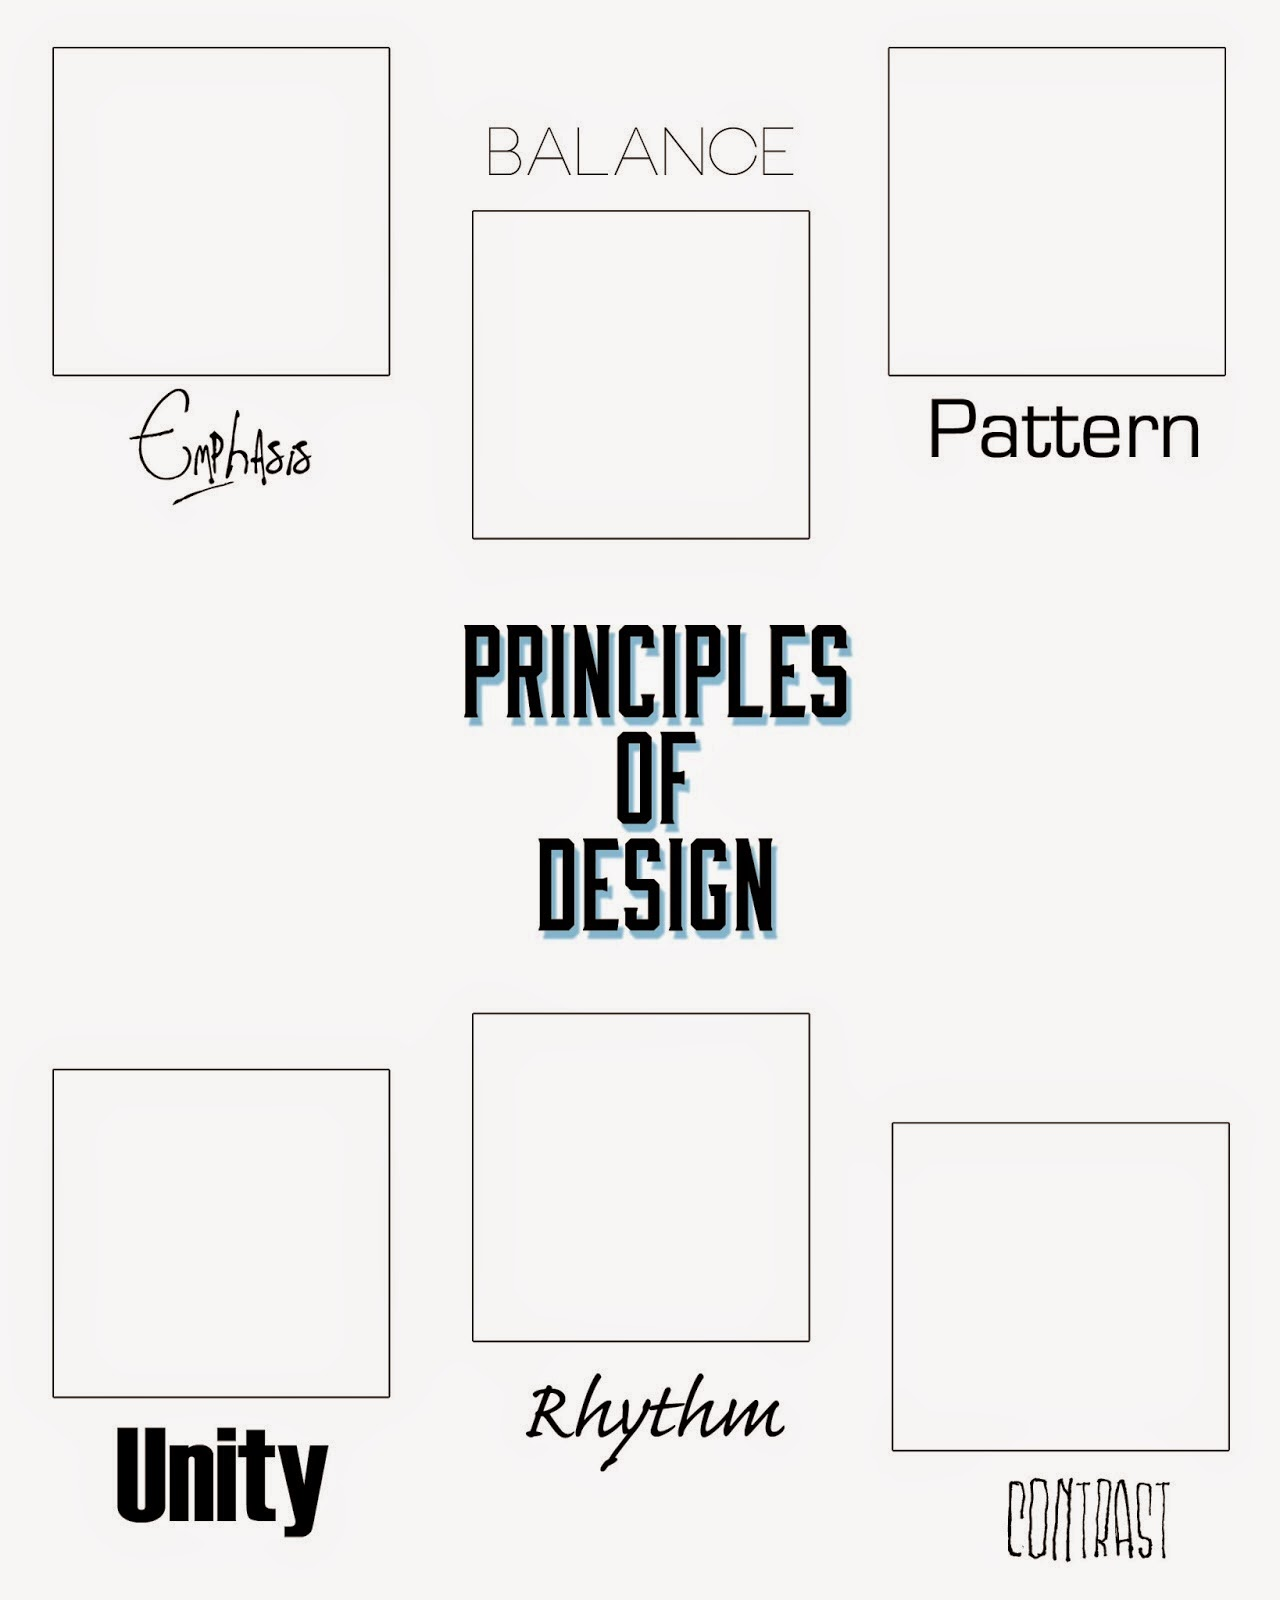 Visual design elements and principles